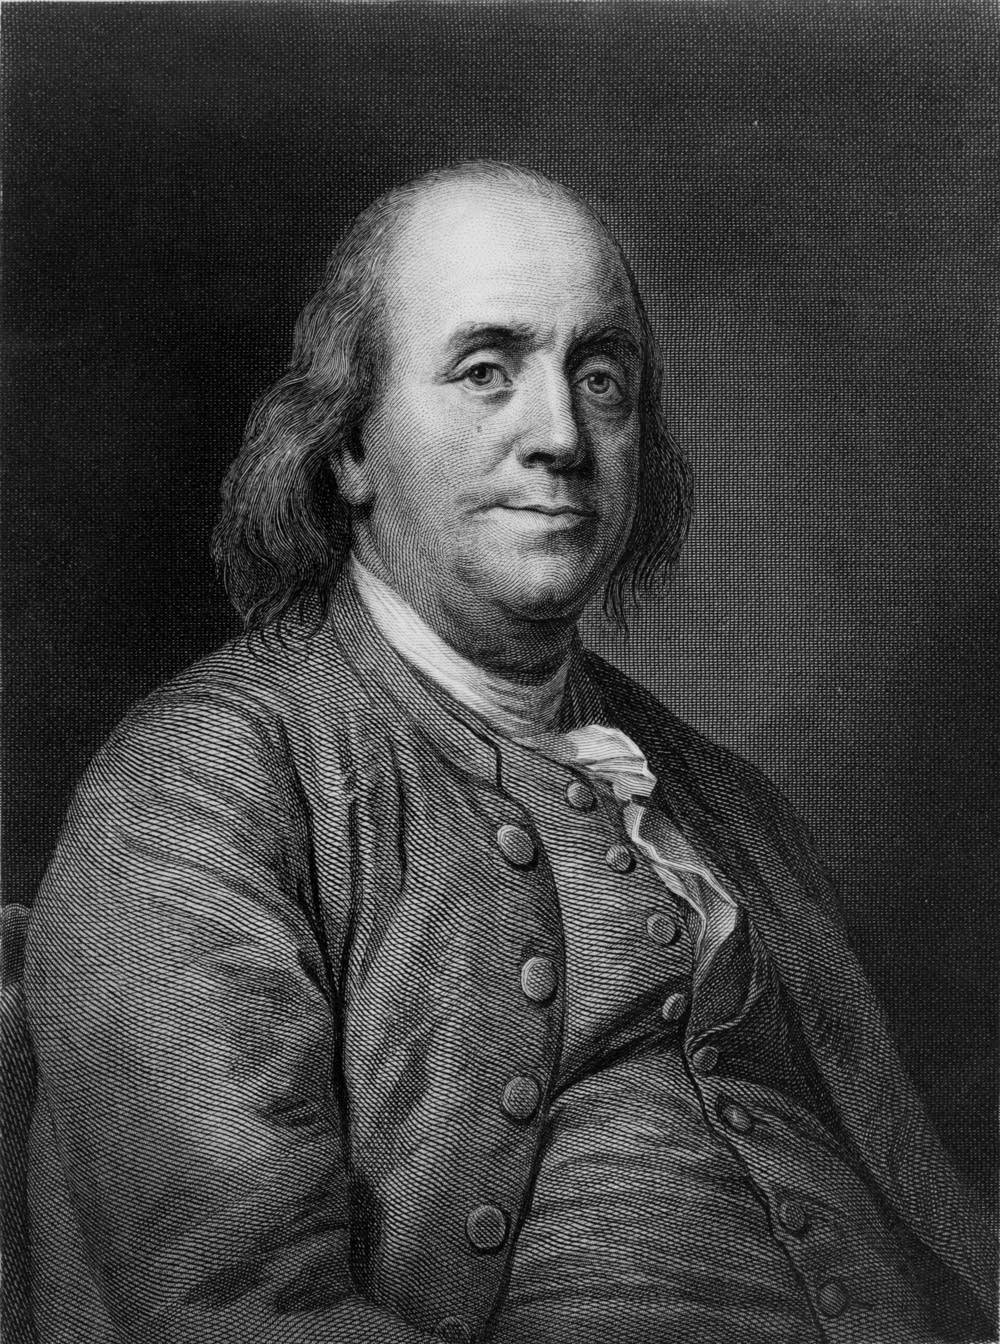 nothing in life is certain a quote by benjamin franklin